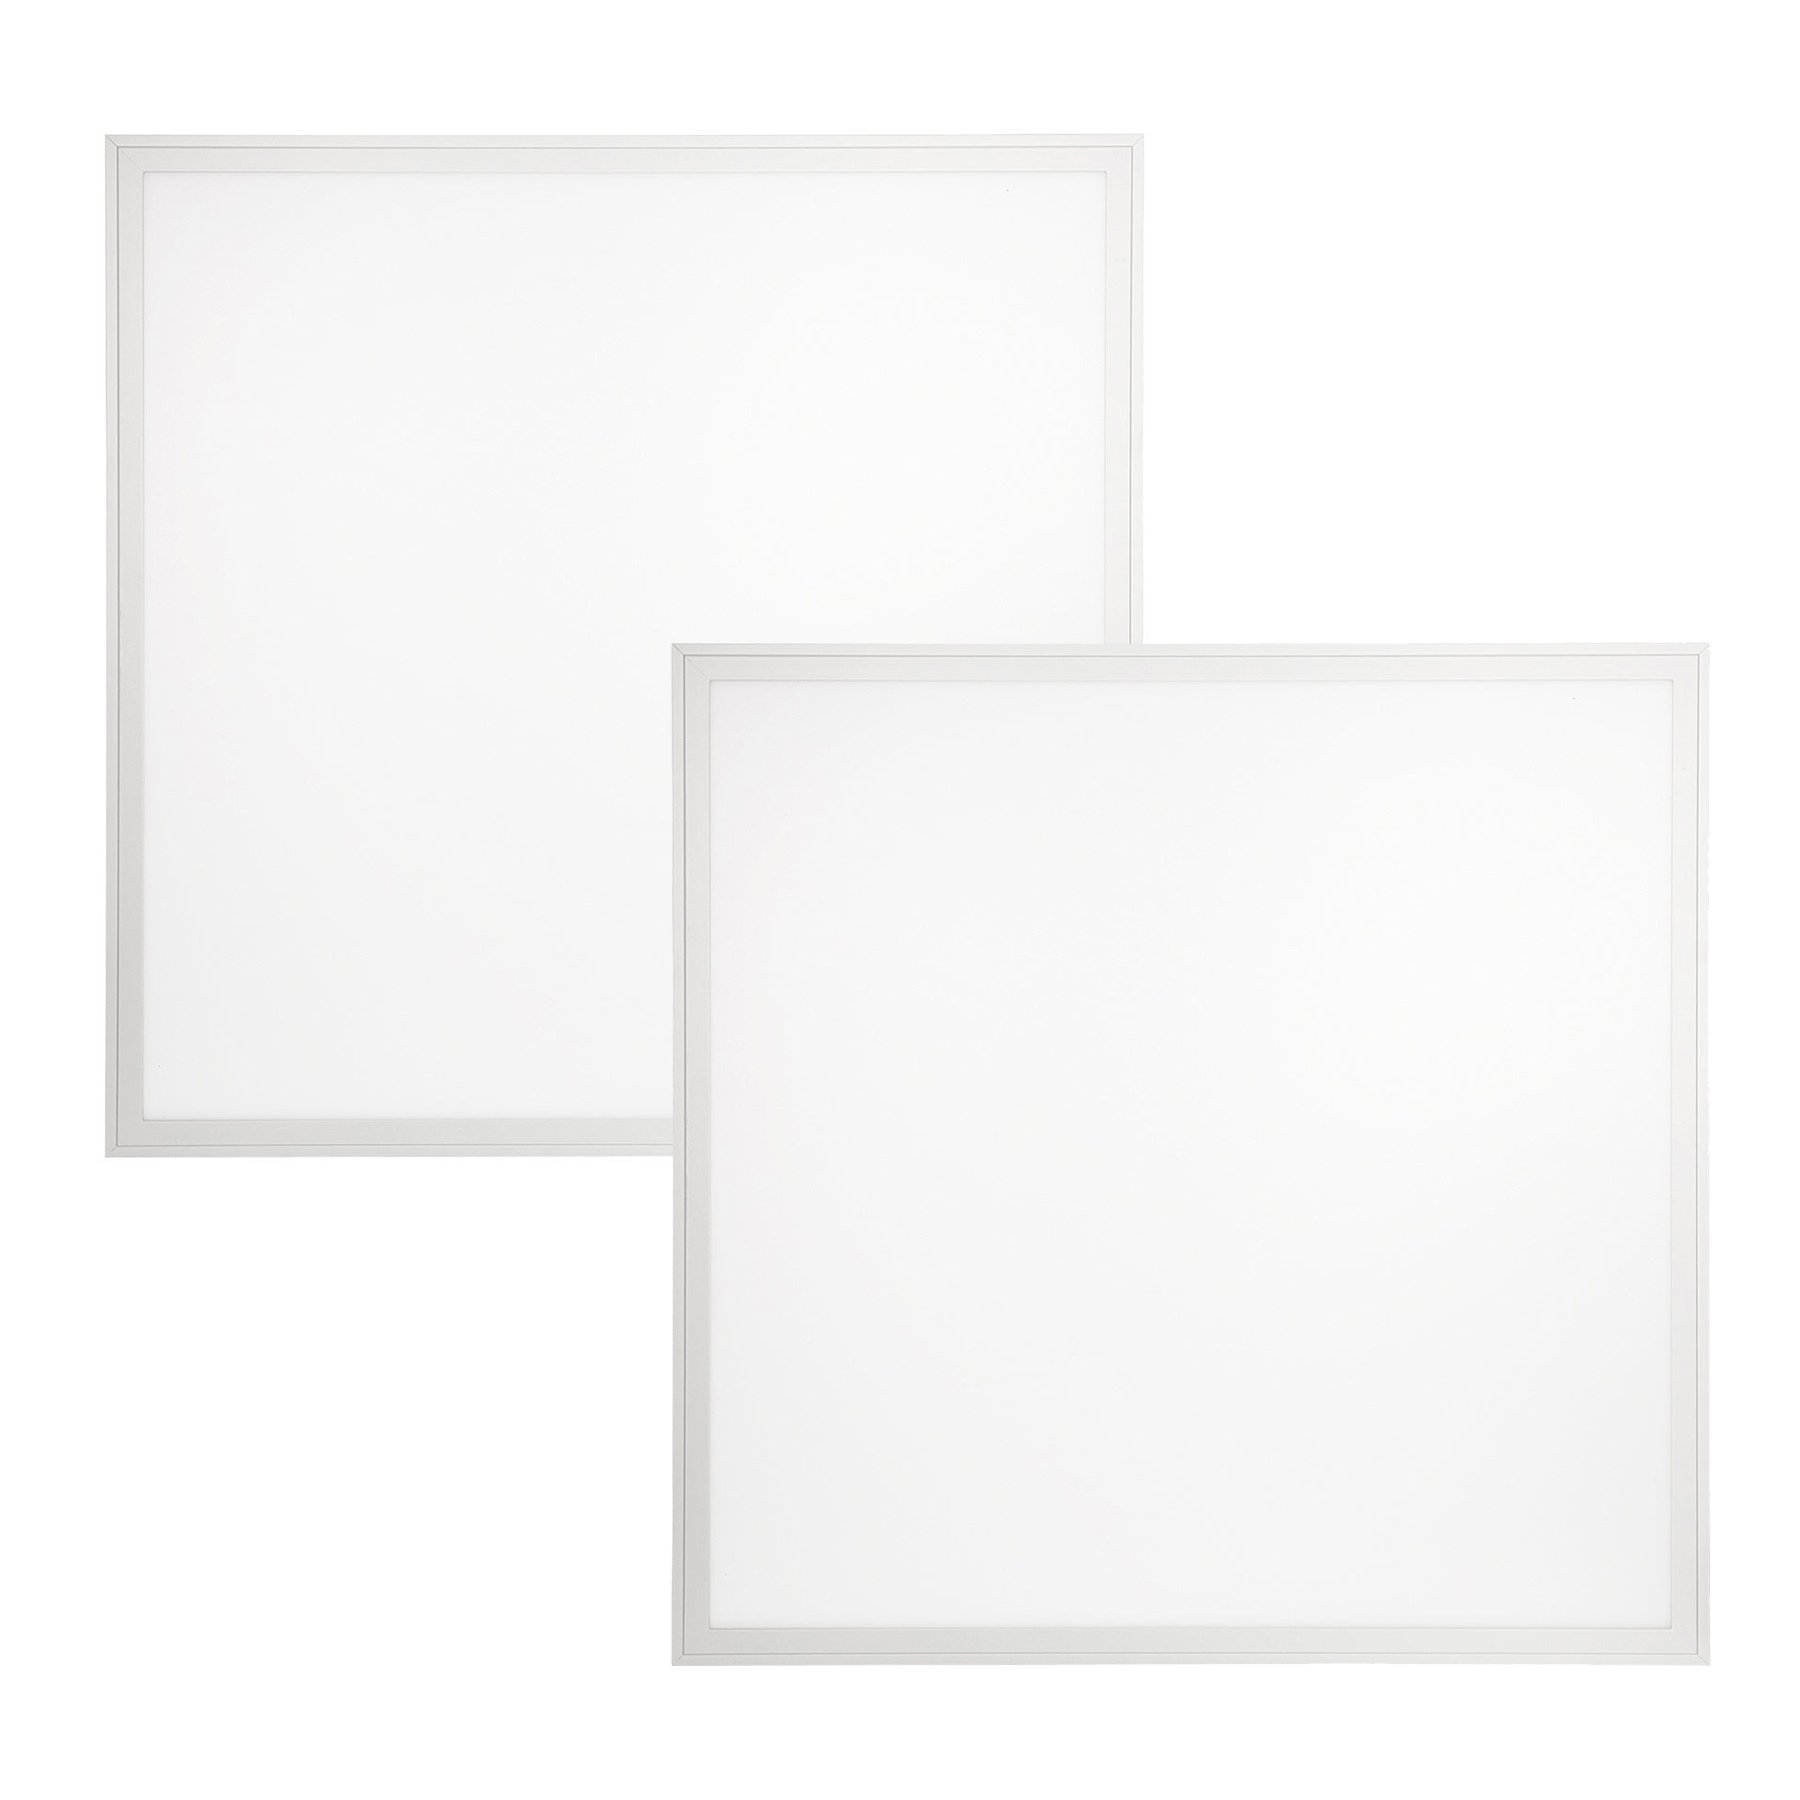 2-Pack, 2ft. x 2ft. LumeGen LED Dimmable Flat Panel - Title 24 Compliant - 40W, 4400 Lumens, 4000K Soft White